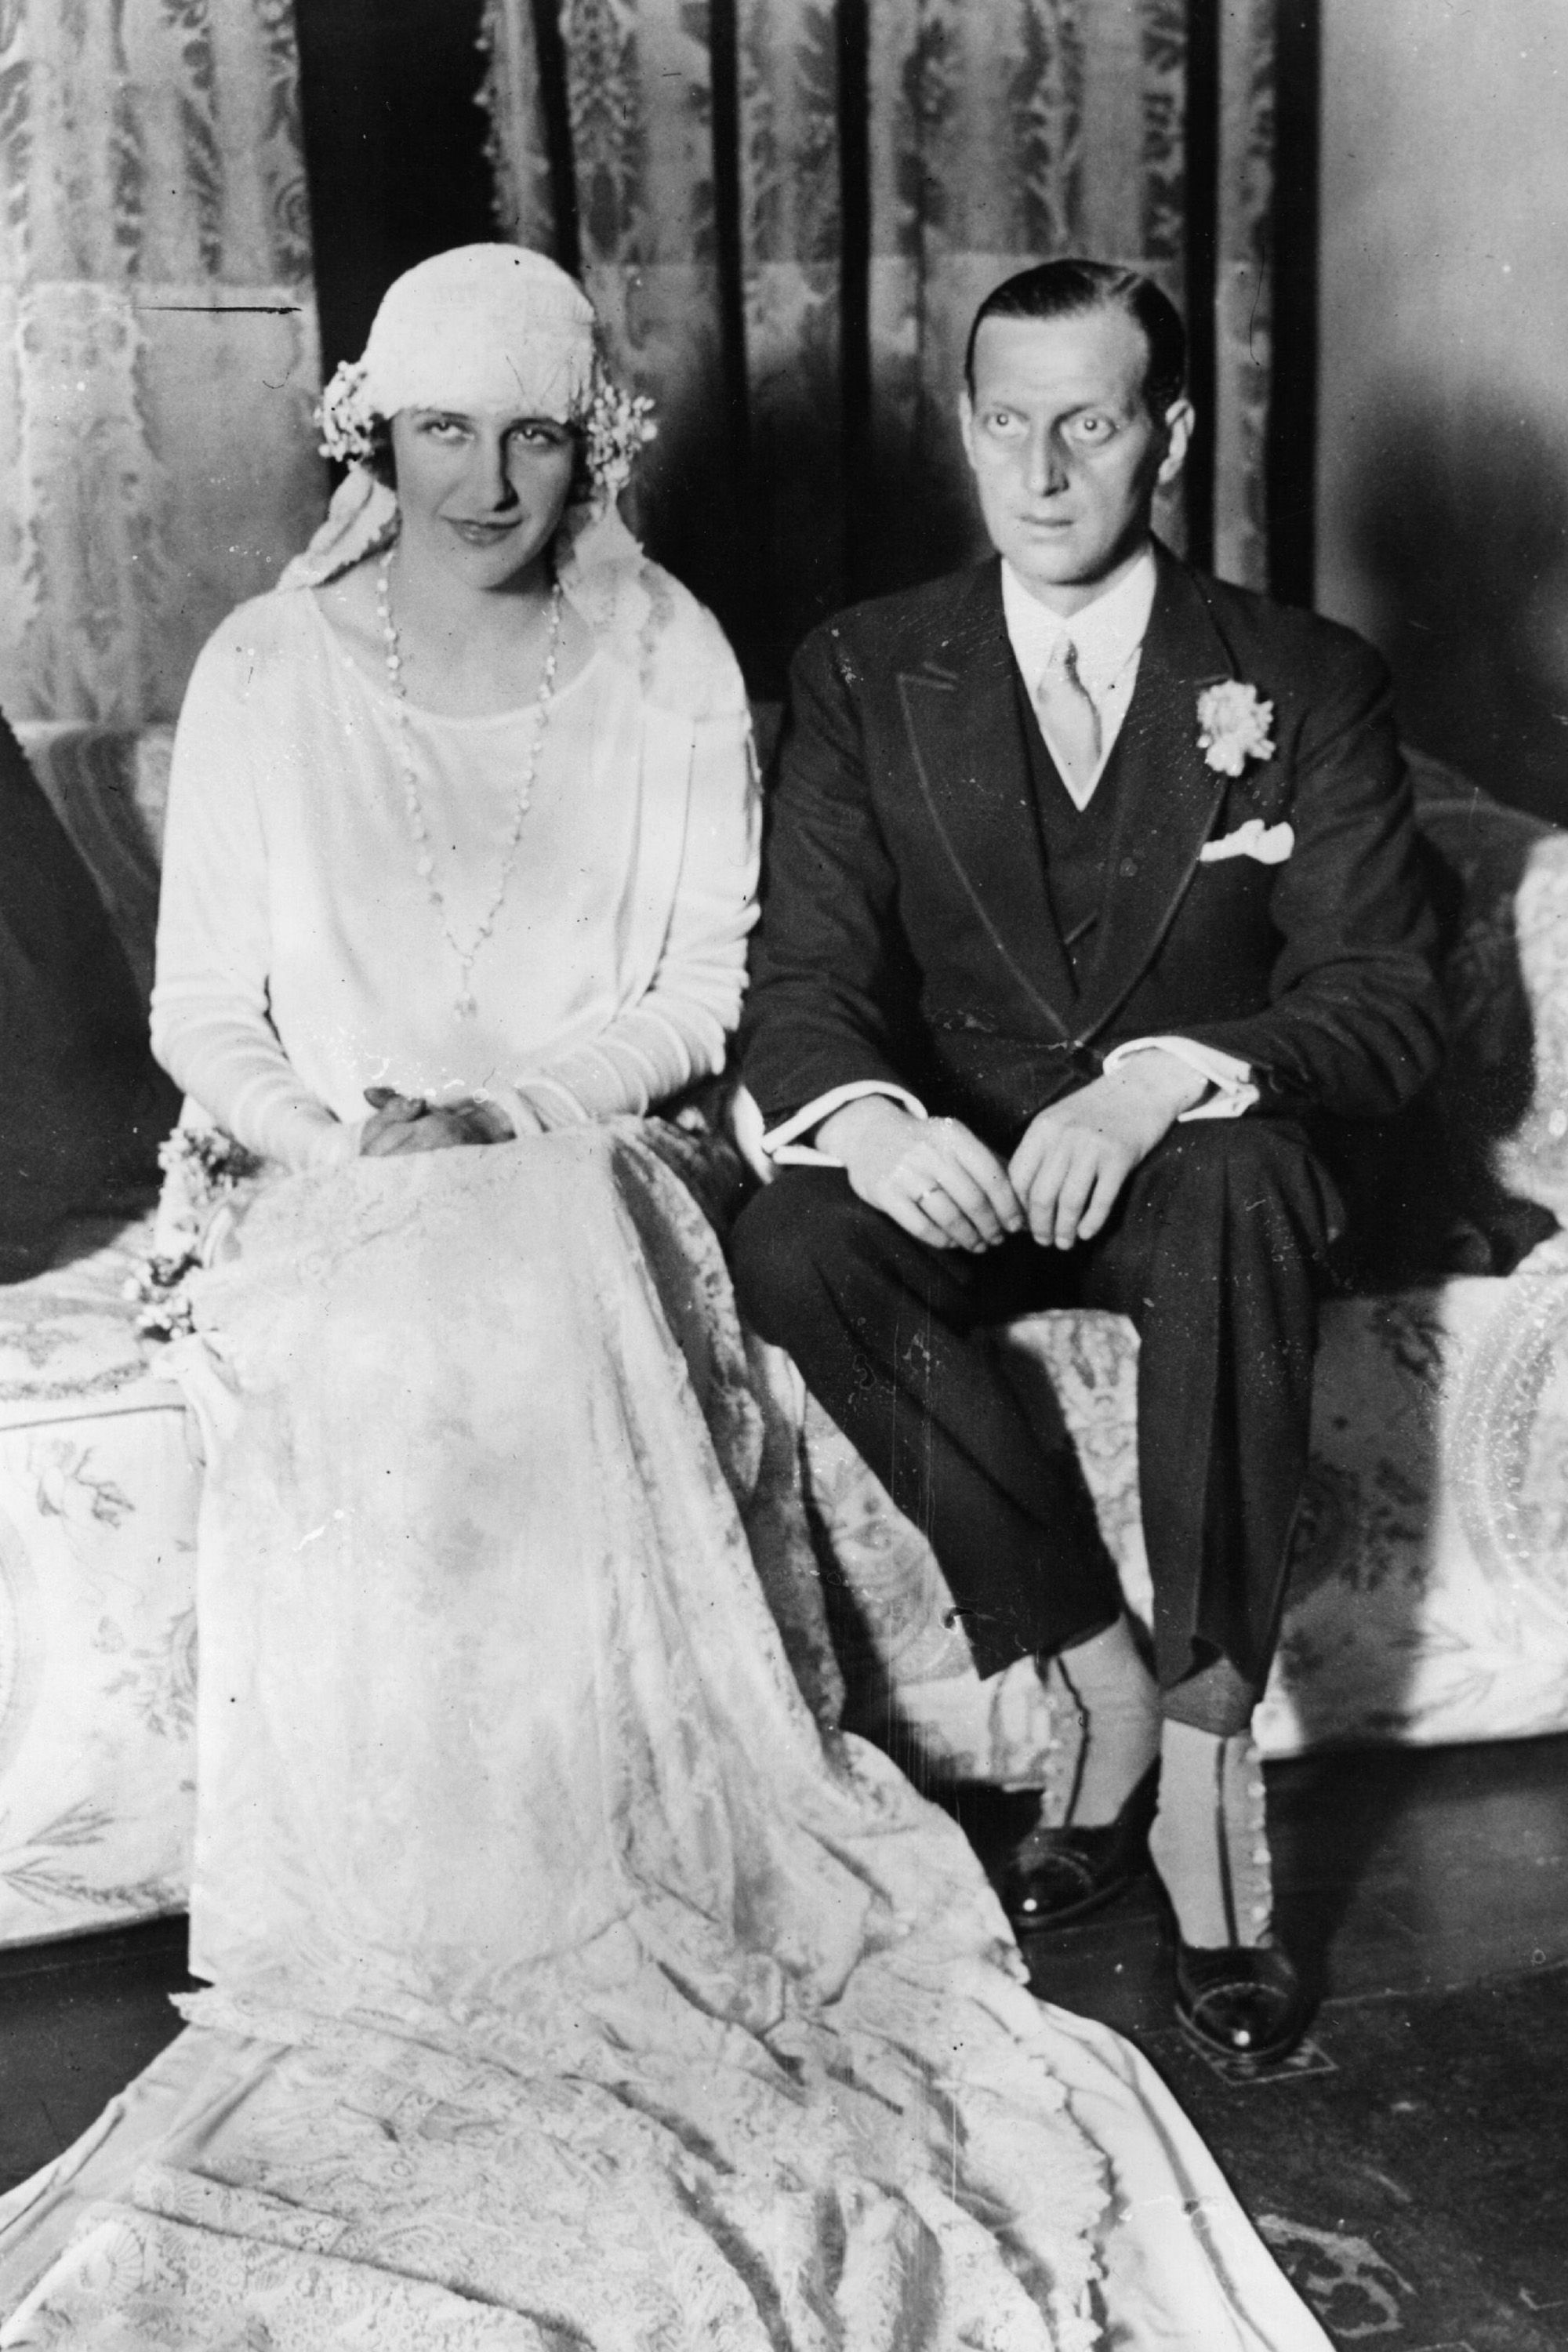 The Grand Duke of Russia,  Dmitri Pavlovitch and his bride, Audrey Emery, of New York.   (Photo by Topical Press Agency/Getty Images)